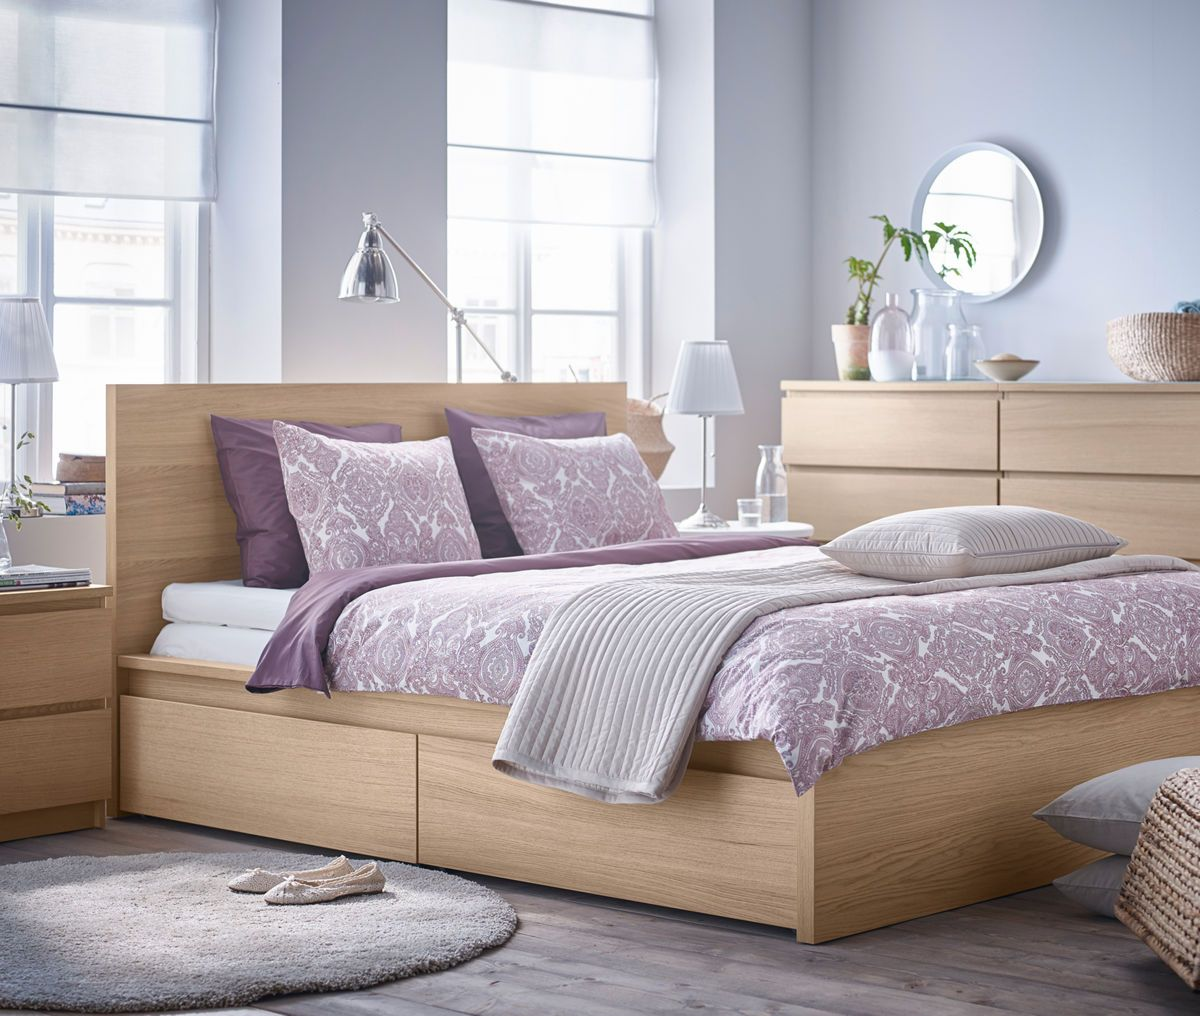 IKEA Bedroom Brochure 2017 Malm bed frame, High bed